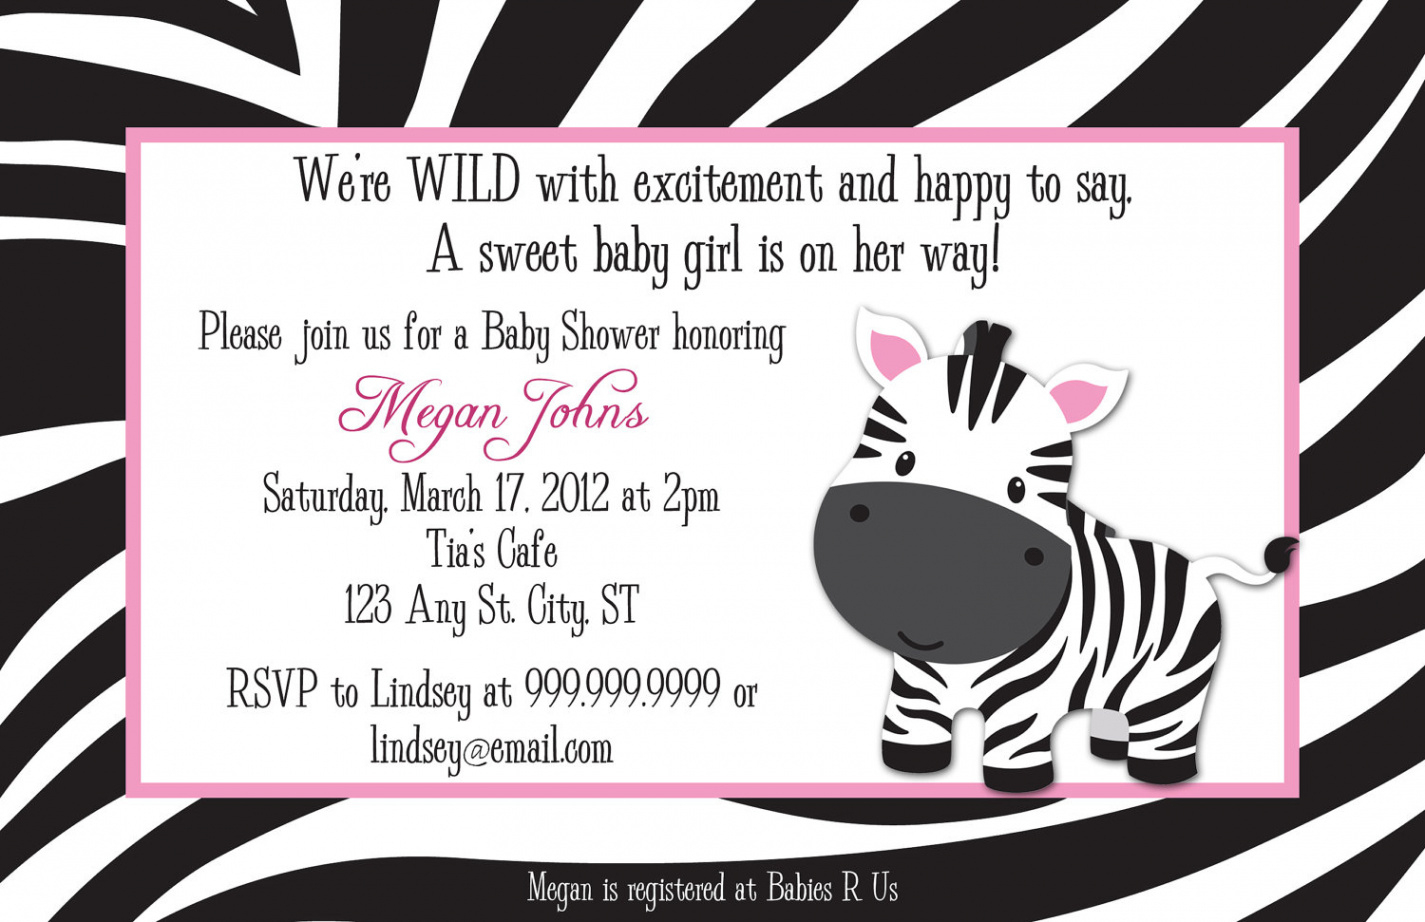 Creative Free Printable Animal Print Birthday Invitations - Free Printable Animal Print Birthday Invitations